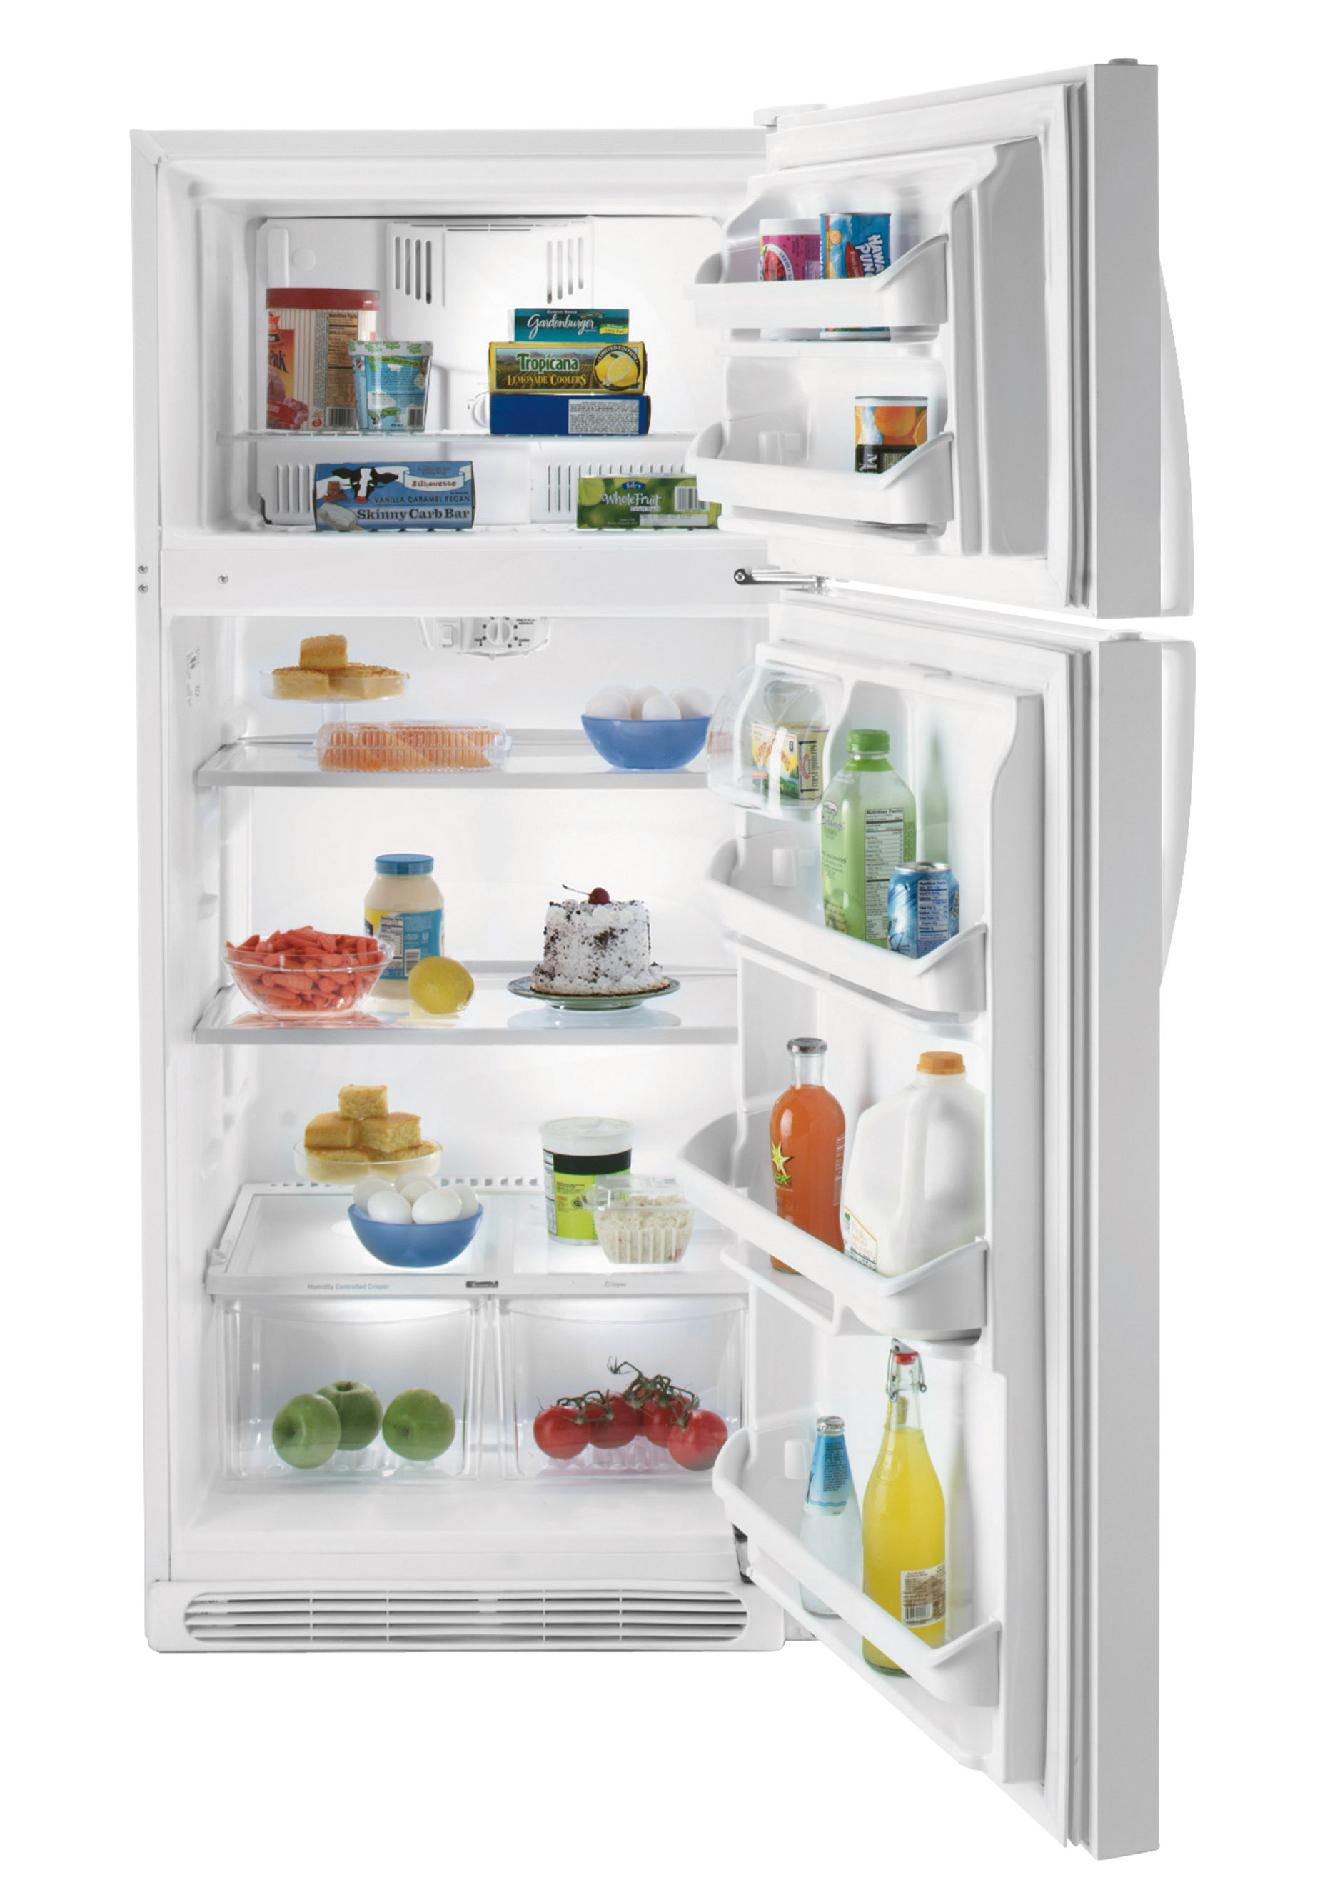 Kenmore 18.2 cu. ft. Top-Freezer Refrigerator, White